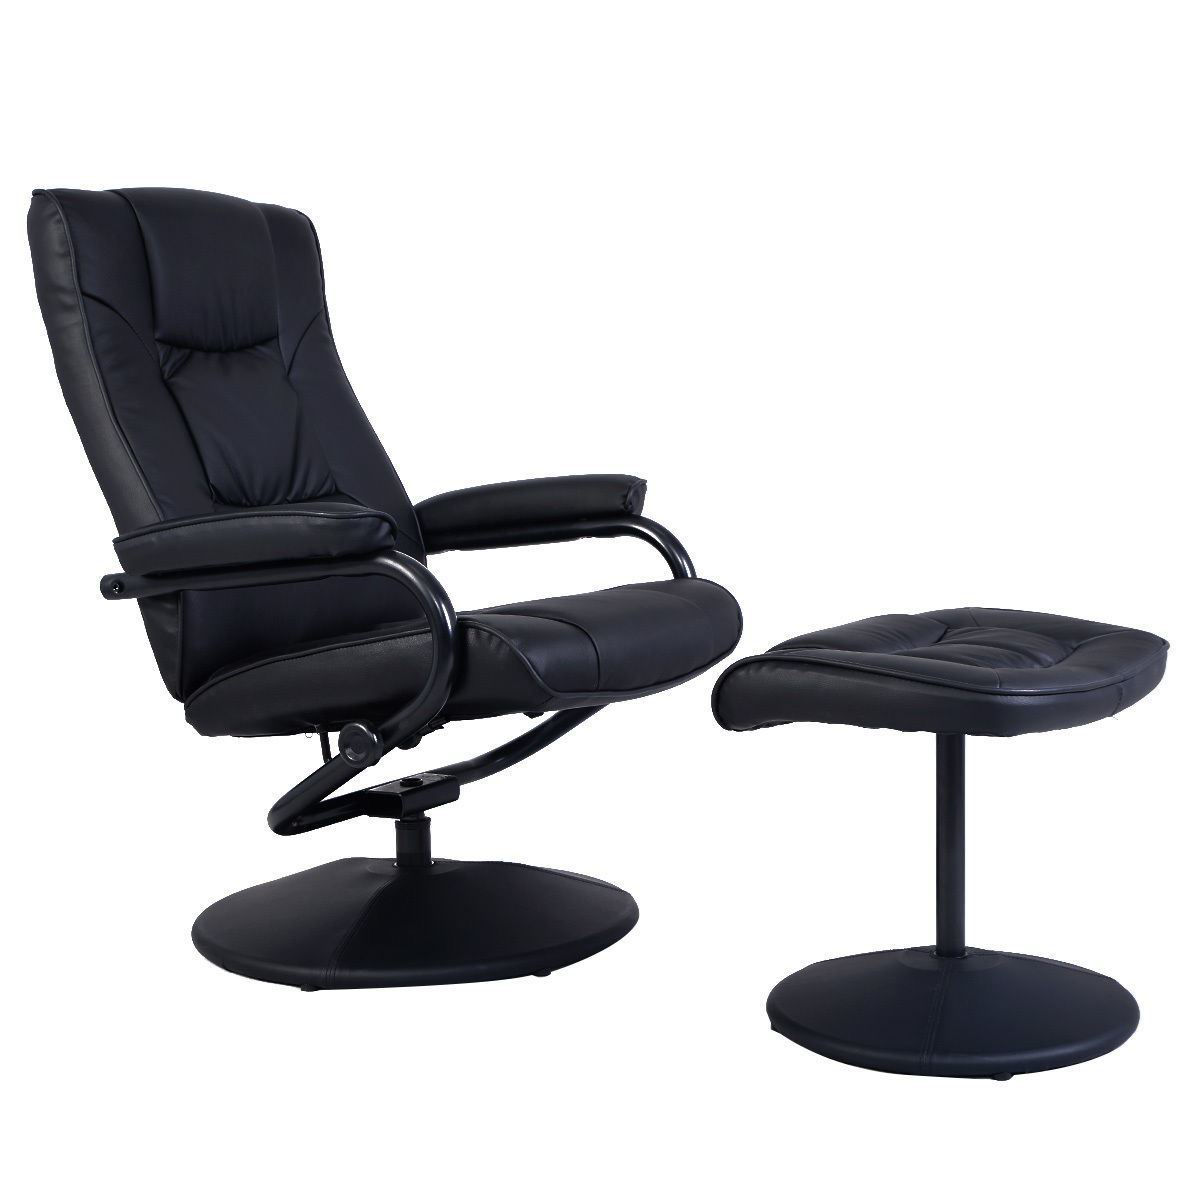 Picture of Recliner Chair Swivel Armchair Lounge Seat with Footrest Ottoman